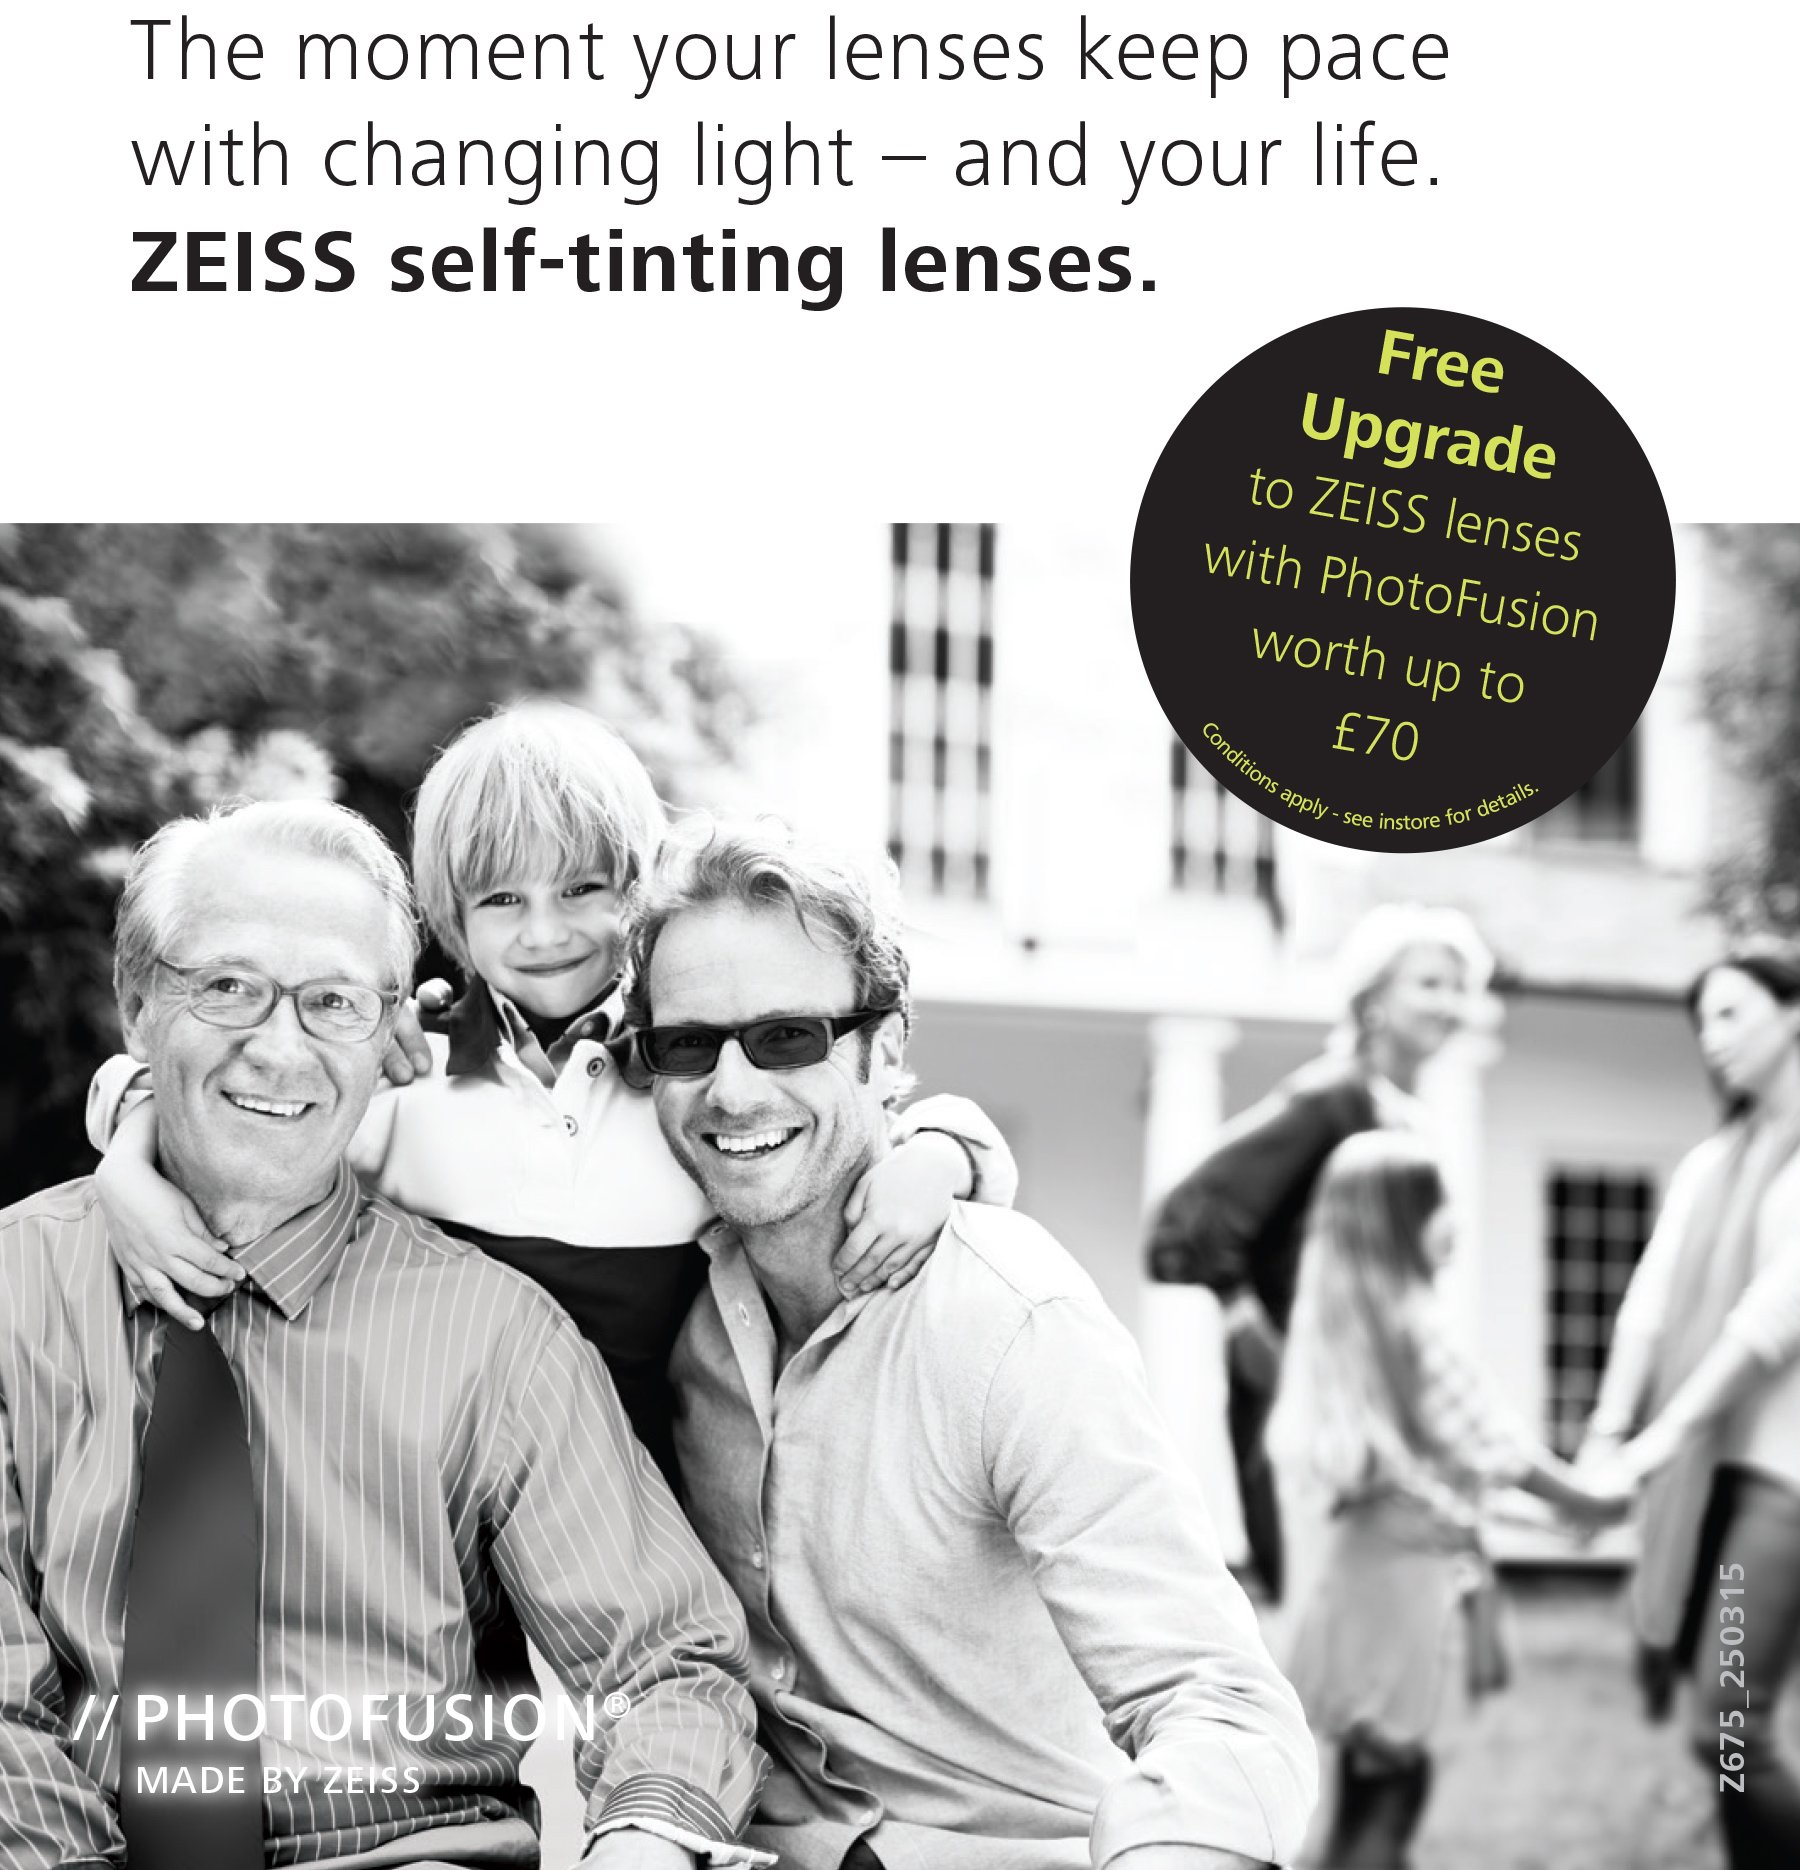 fea6f0abef4 Free Upgrade to ZEISS Lenses with PhotoFusion - Worth Up To £70 ...